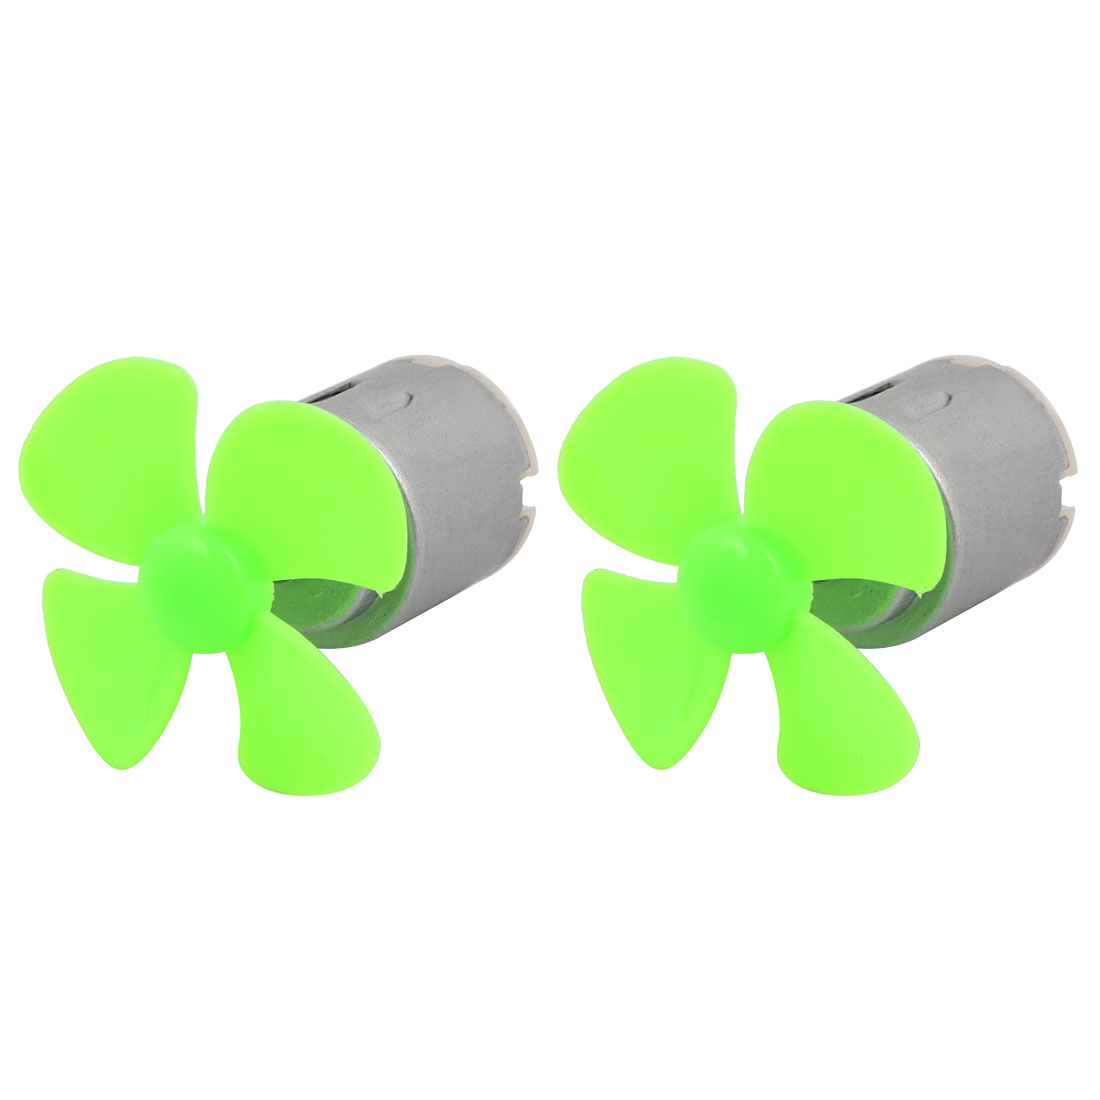 2pcs DC 3V 0.13A 11000RPM Strong Force Motor 4 Vanes 40mm Green Propeller for RC Aircraft